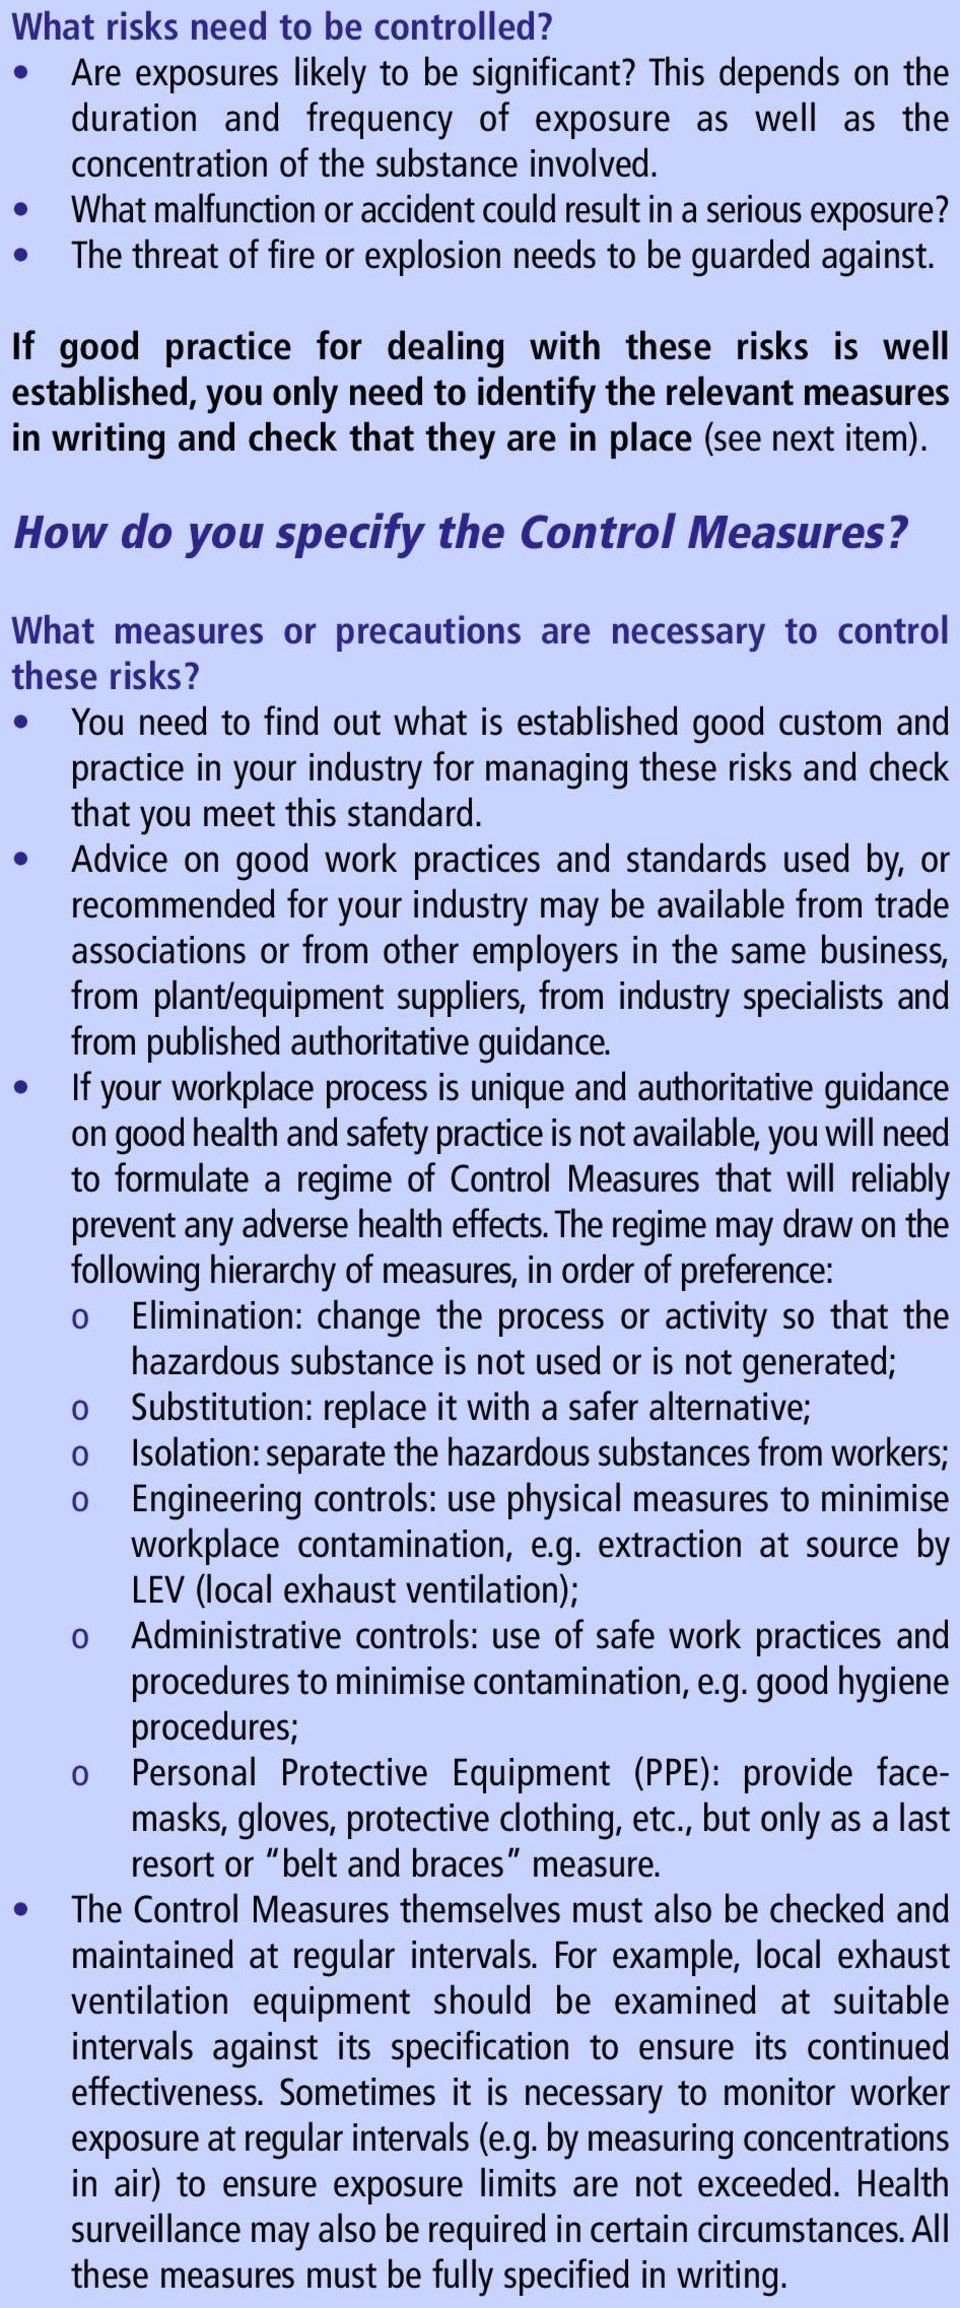 If good practice for dealing with these risks is well established, you only need to identify the relevant measures in writing and check that they are in place (see next item).